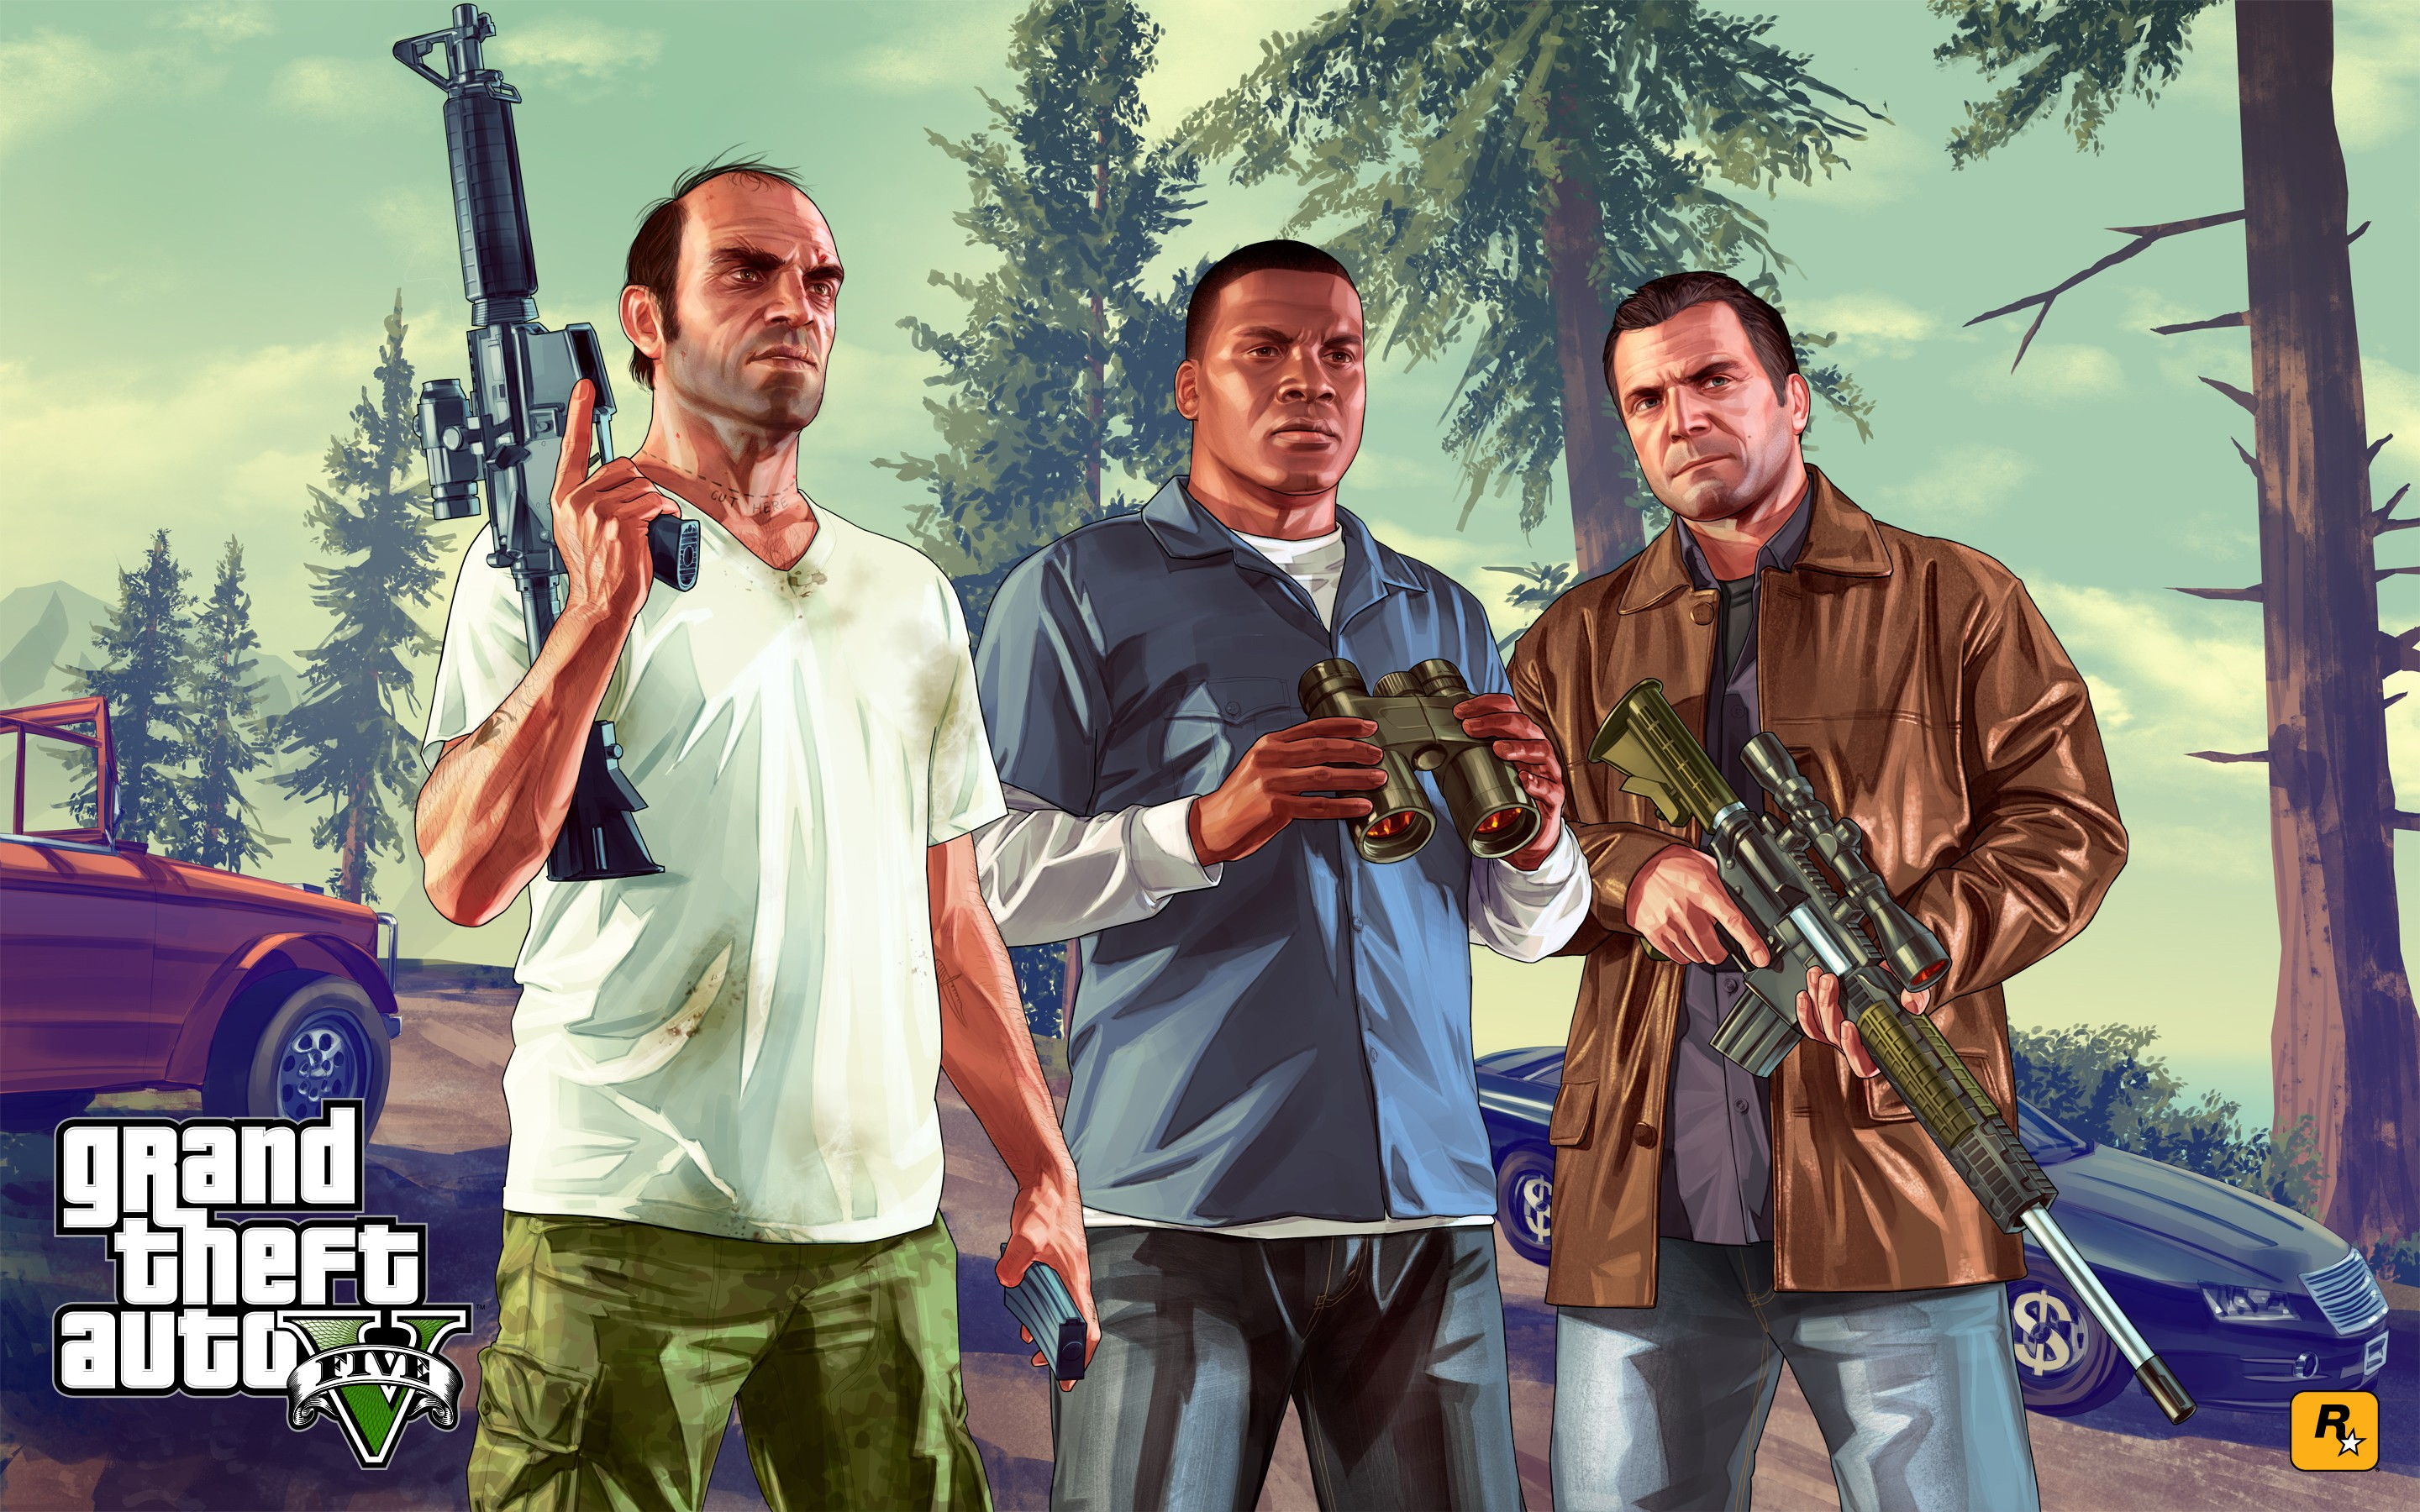 gta 5 wallpaper ·① download free full hd backgrounds for desktop